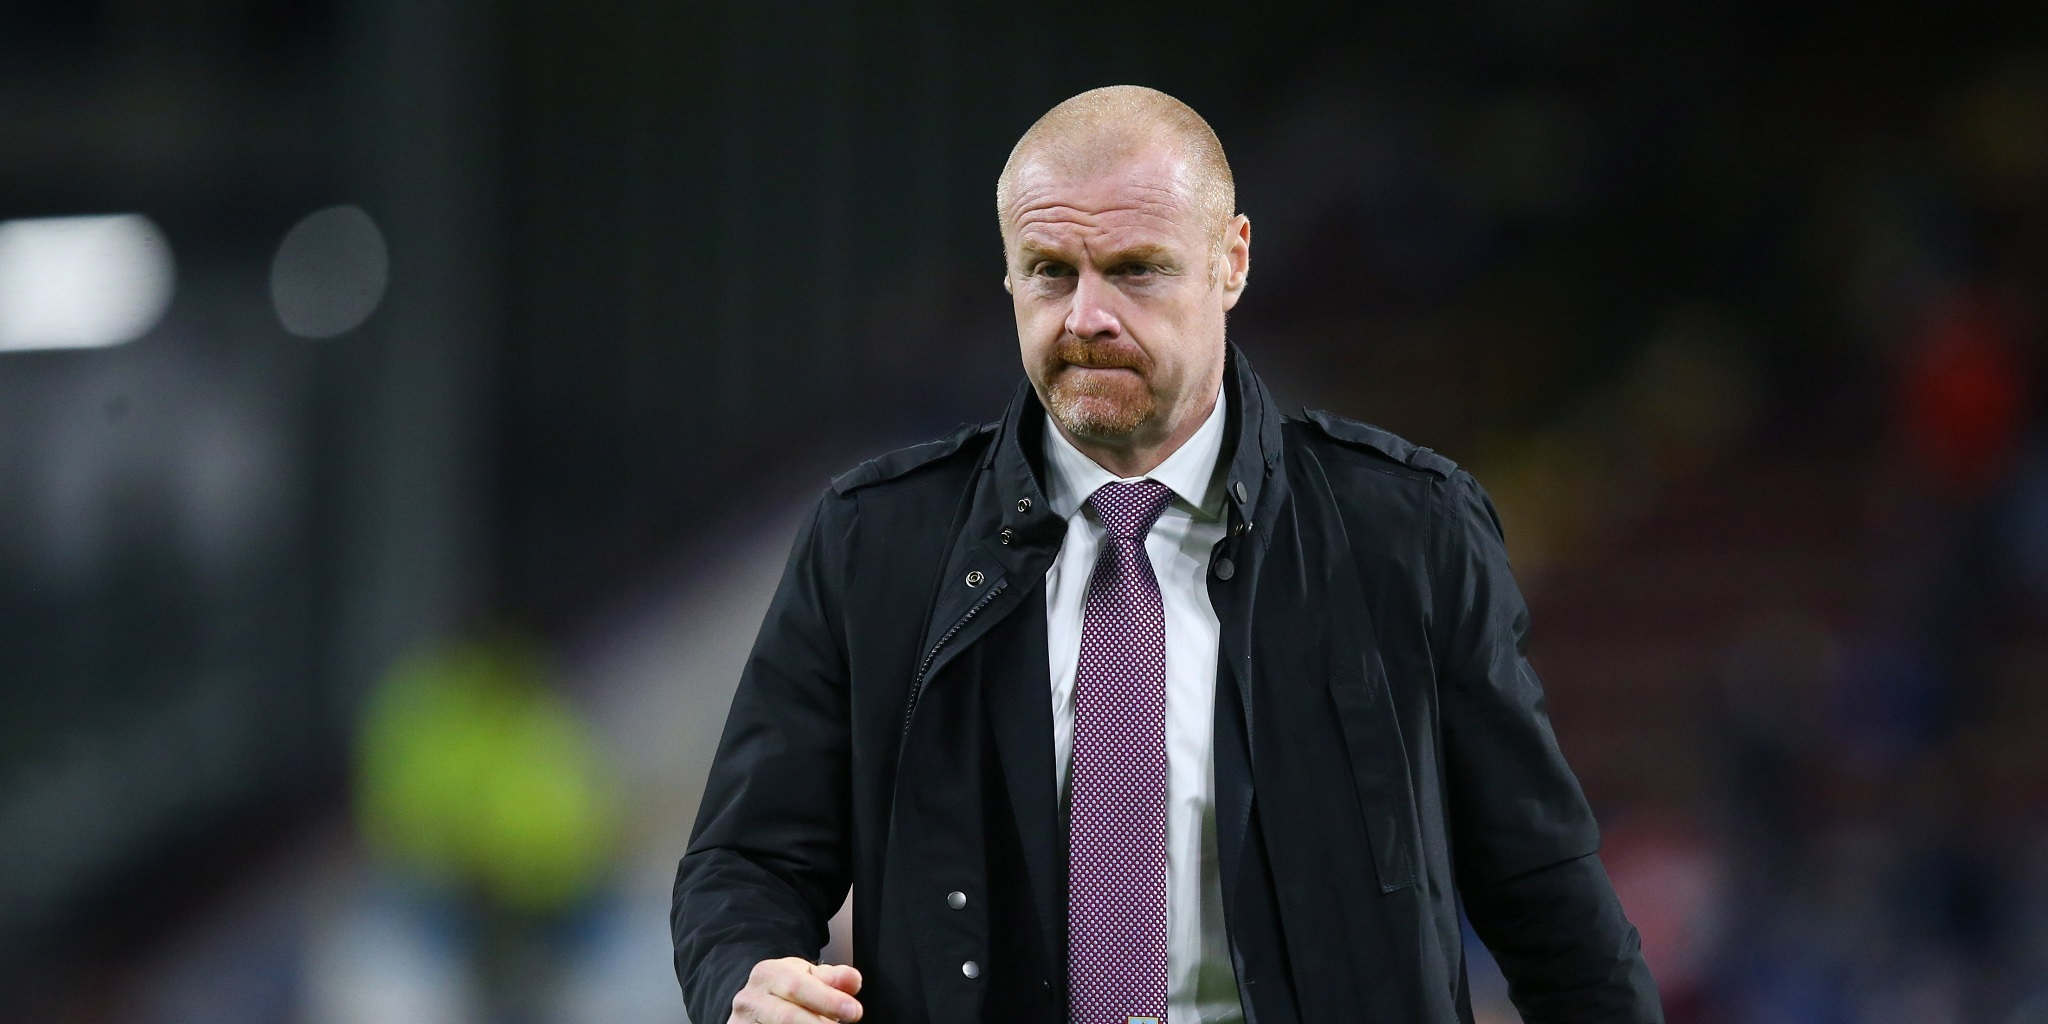 Dyche calls out 'inappropriate' Klopp after Liverpool boss slams 'dangerous' Burnley play